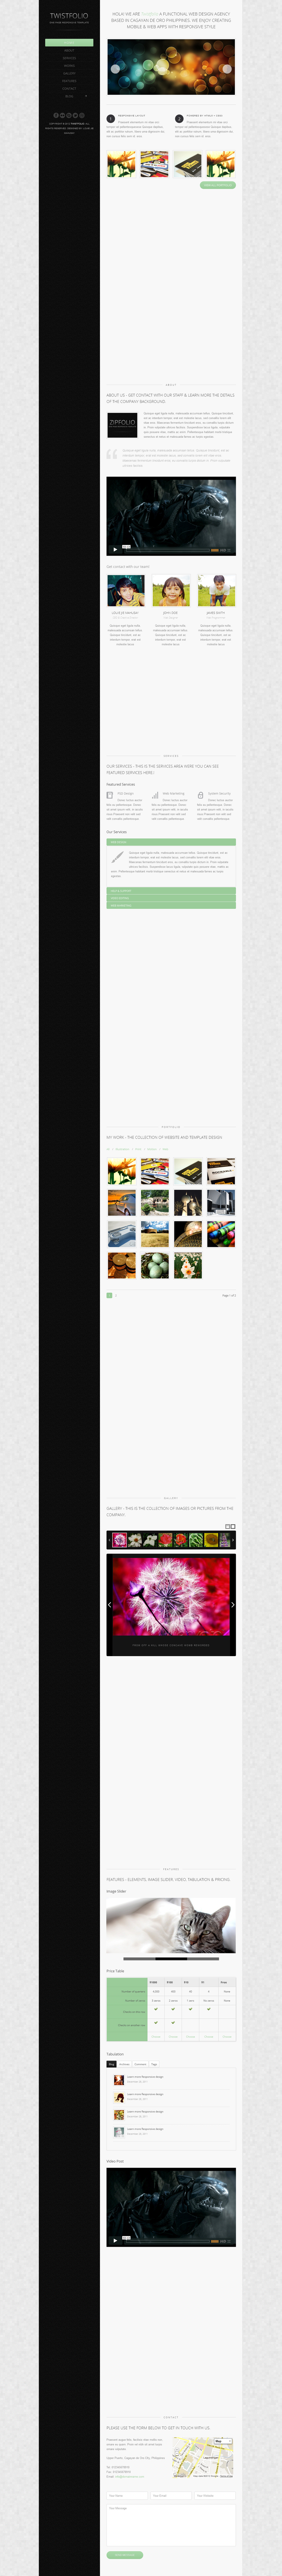 Twistfolio - A Responsive HTML5 One Page Template -